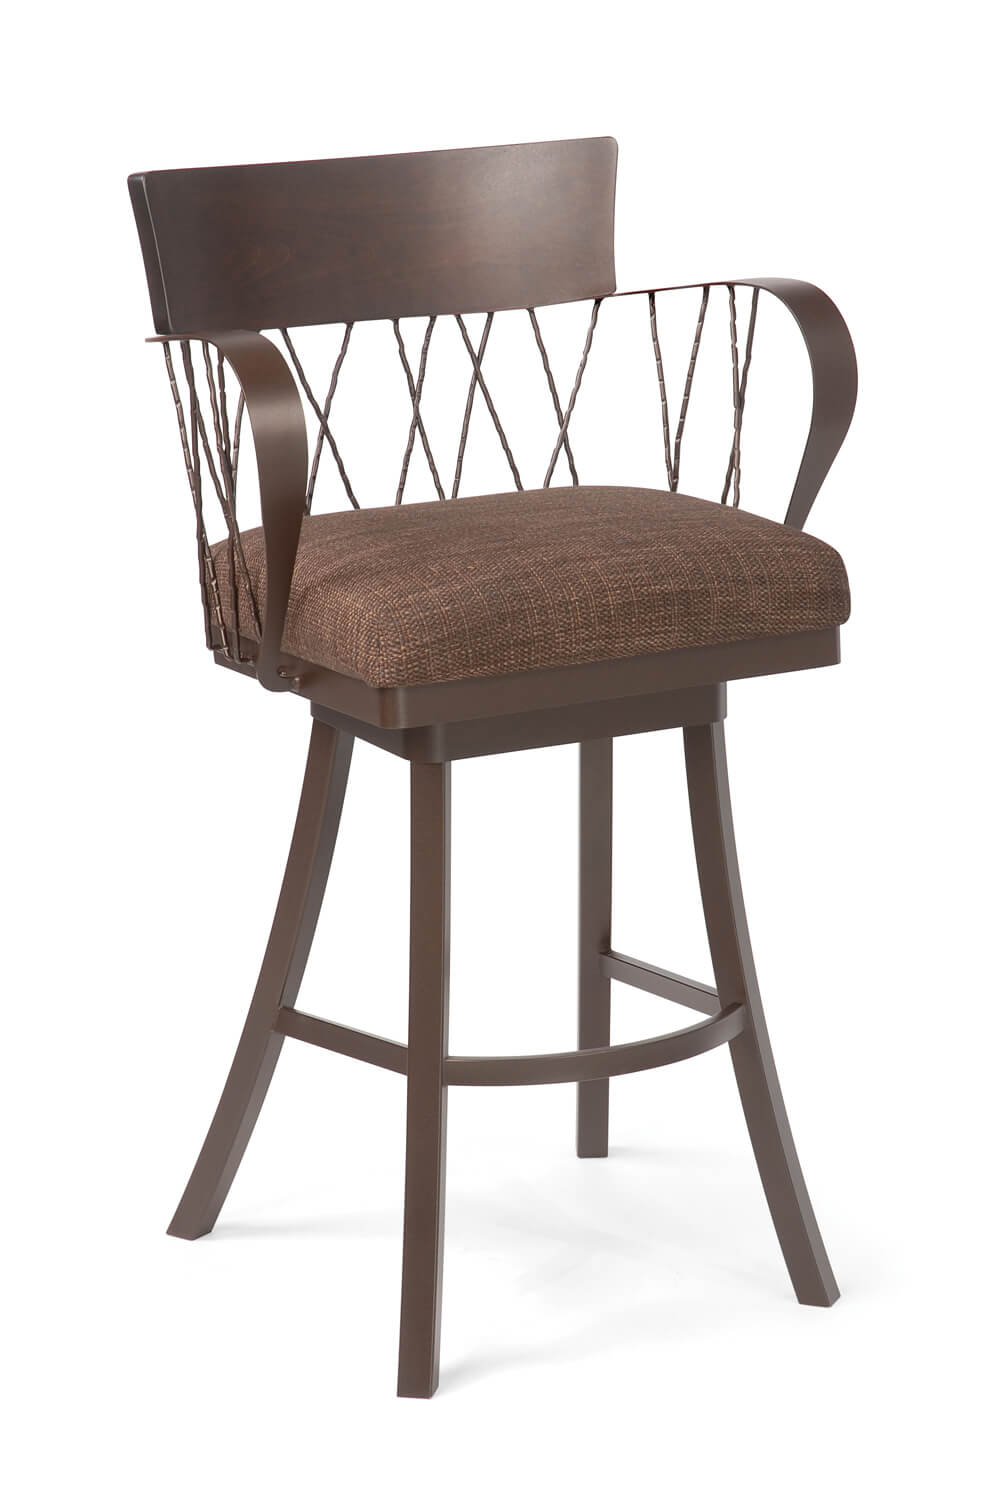 Buy Trica S Bambusa Wide Swivel Bar Stool W Arms Free